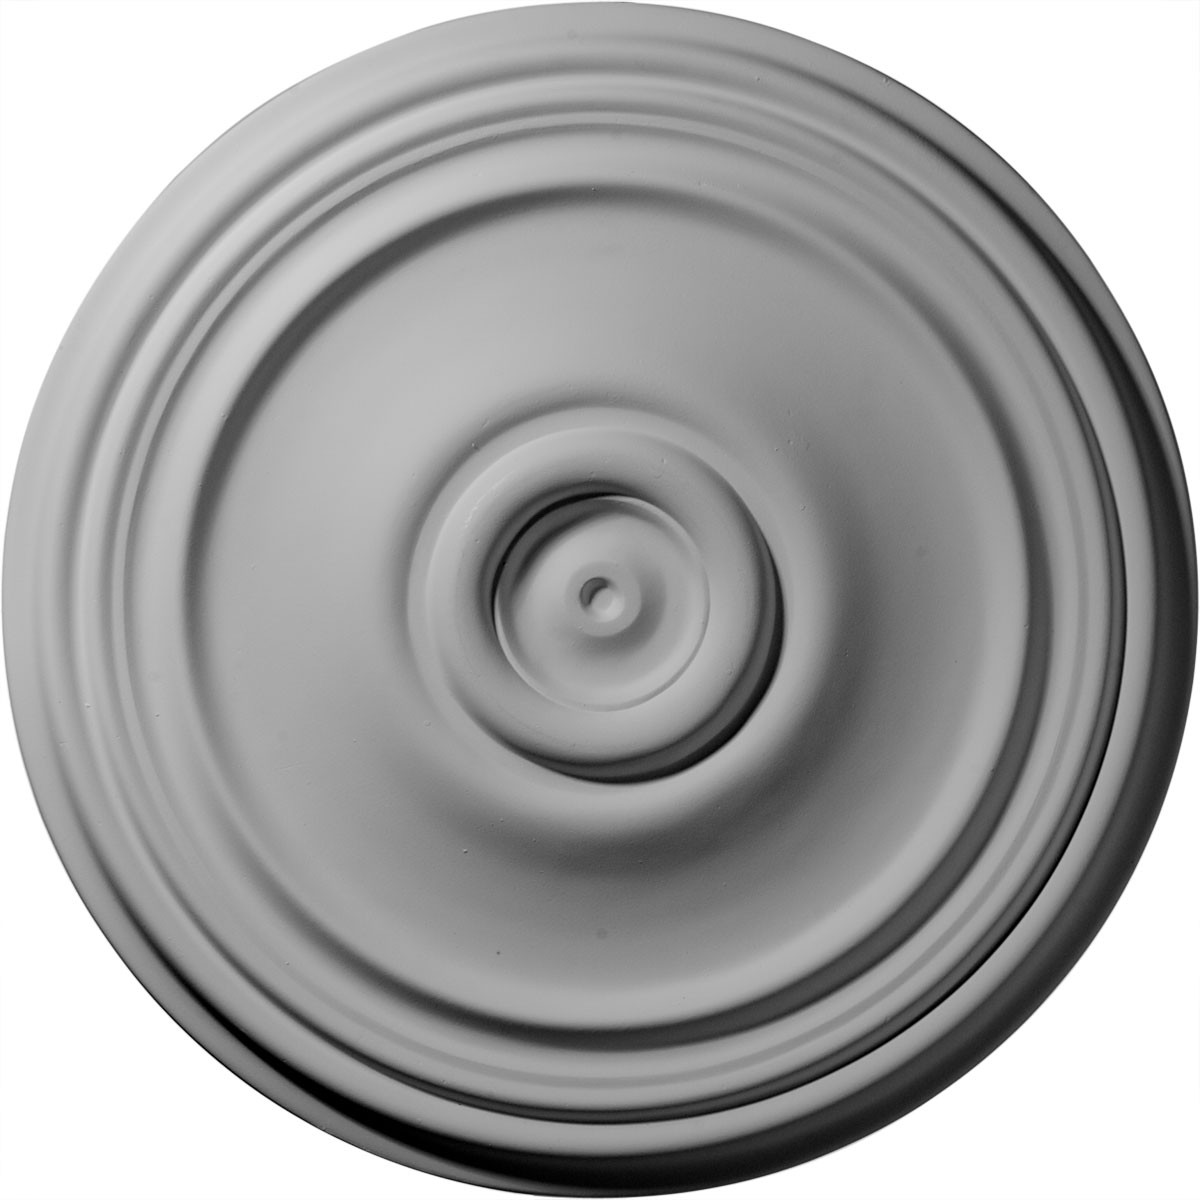 """EM-CM21RE - 21""""OD x 1 1/4""""P Reece Ceiling Medallion (Fits Canopies up to 6 3/4"""")"""